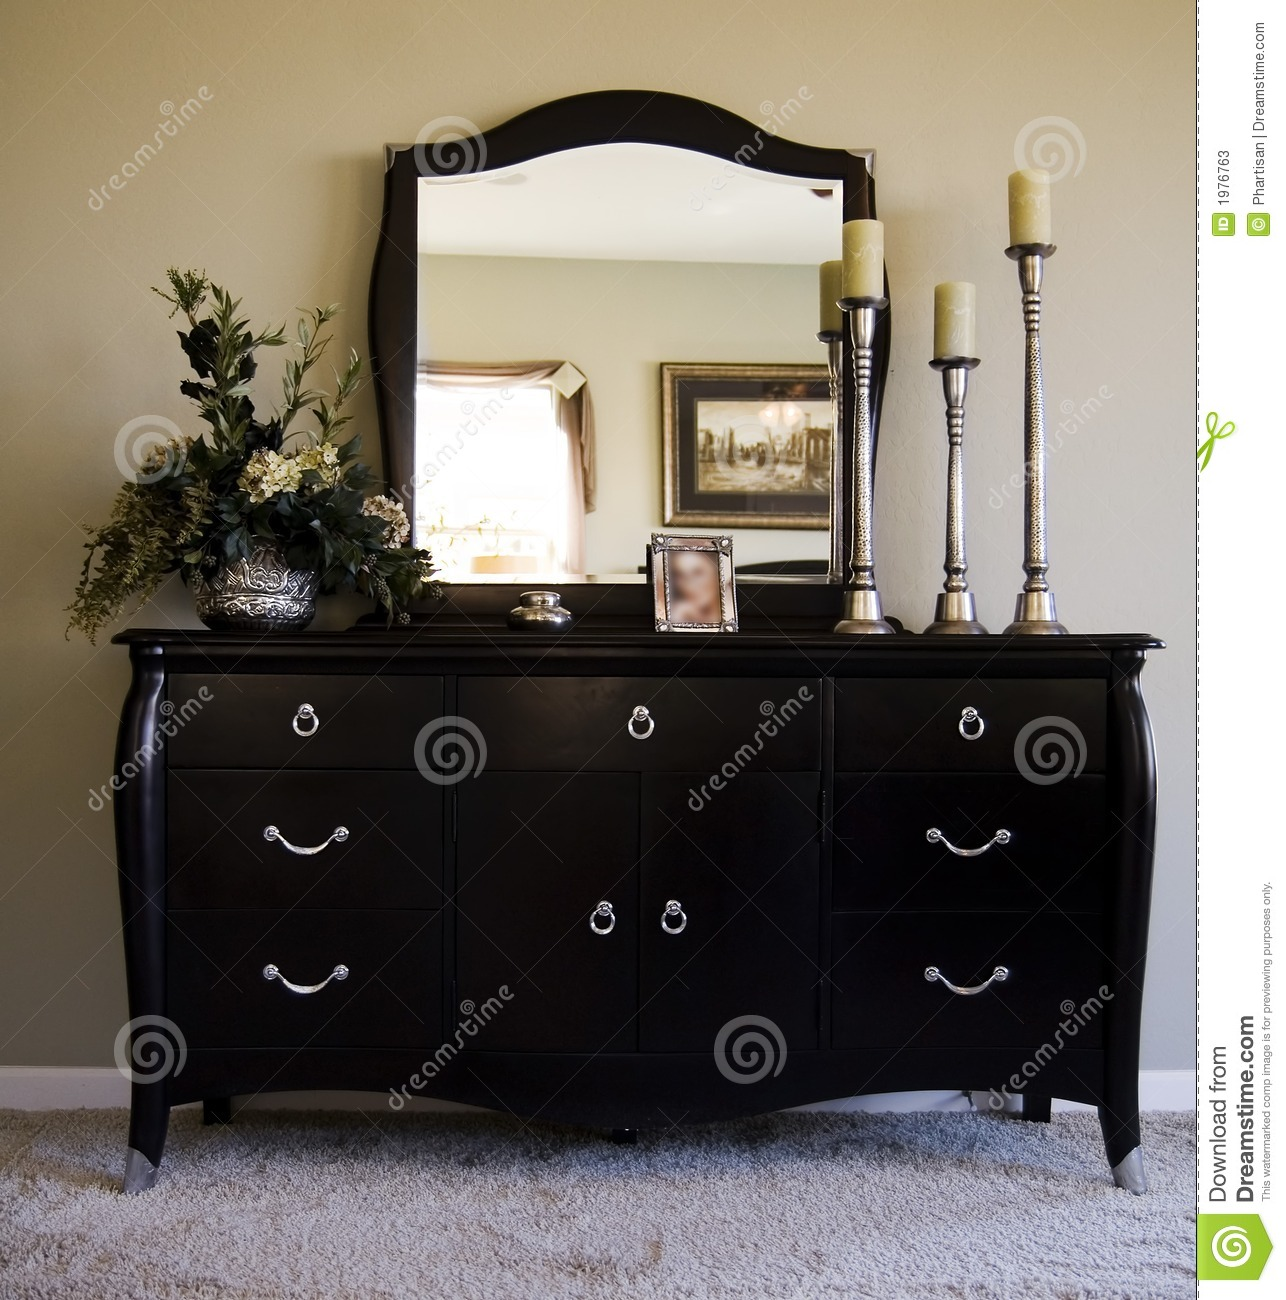 romantic bedroom with mirror on dresser stock image - image: 1976763